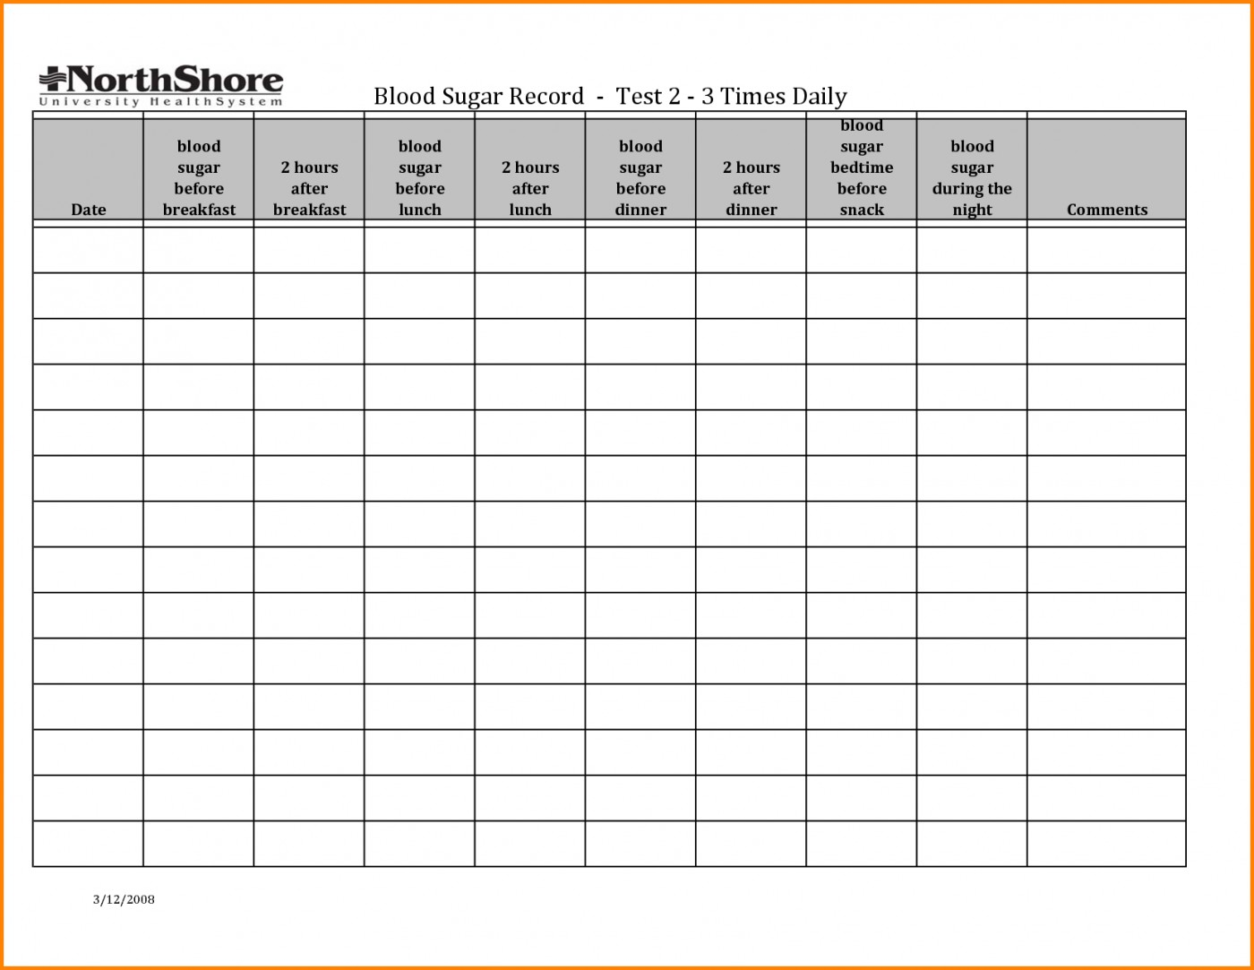 diabetes food log spreadsheet gestational diabetes food log printable diabetes food log printable  Diabetes Food Log Spreadsheet Throughout 017 Blood Sugar Log Template Diabetes Level Chart Luxury Printable Diabetes Food Log Spreadsheet Printable Spreadshee